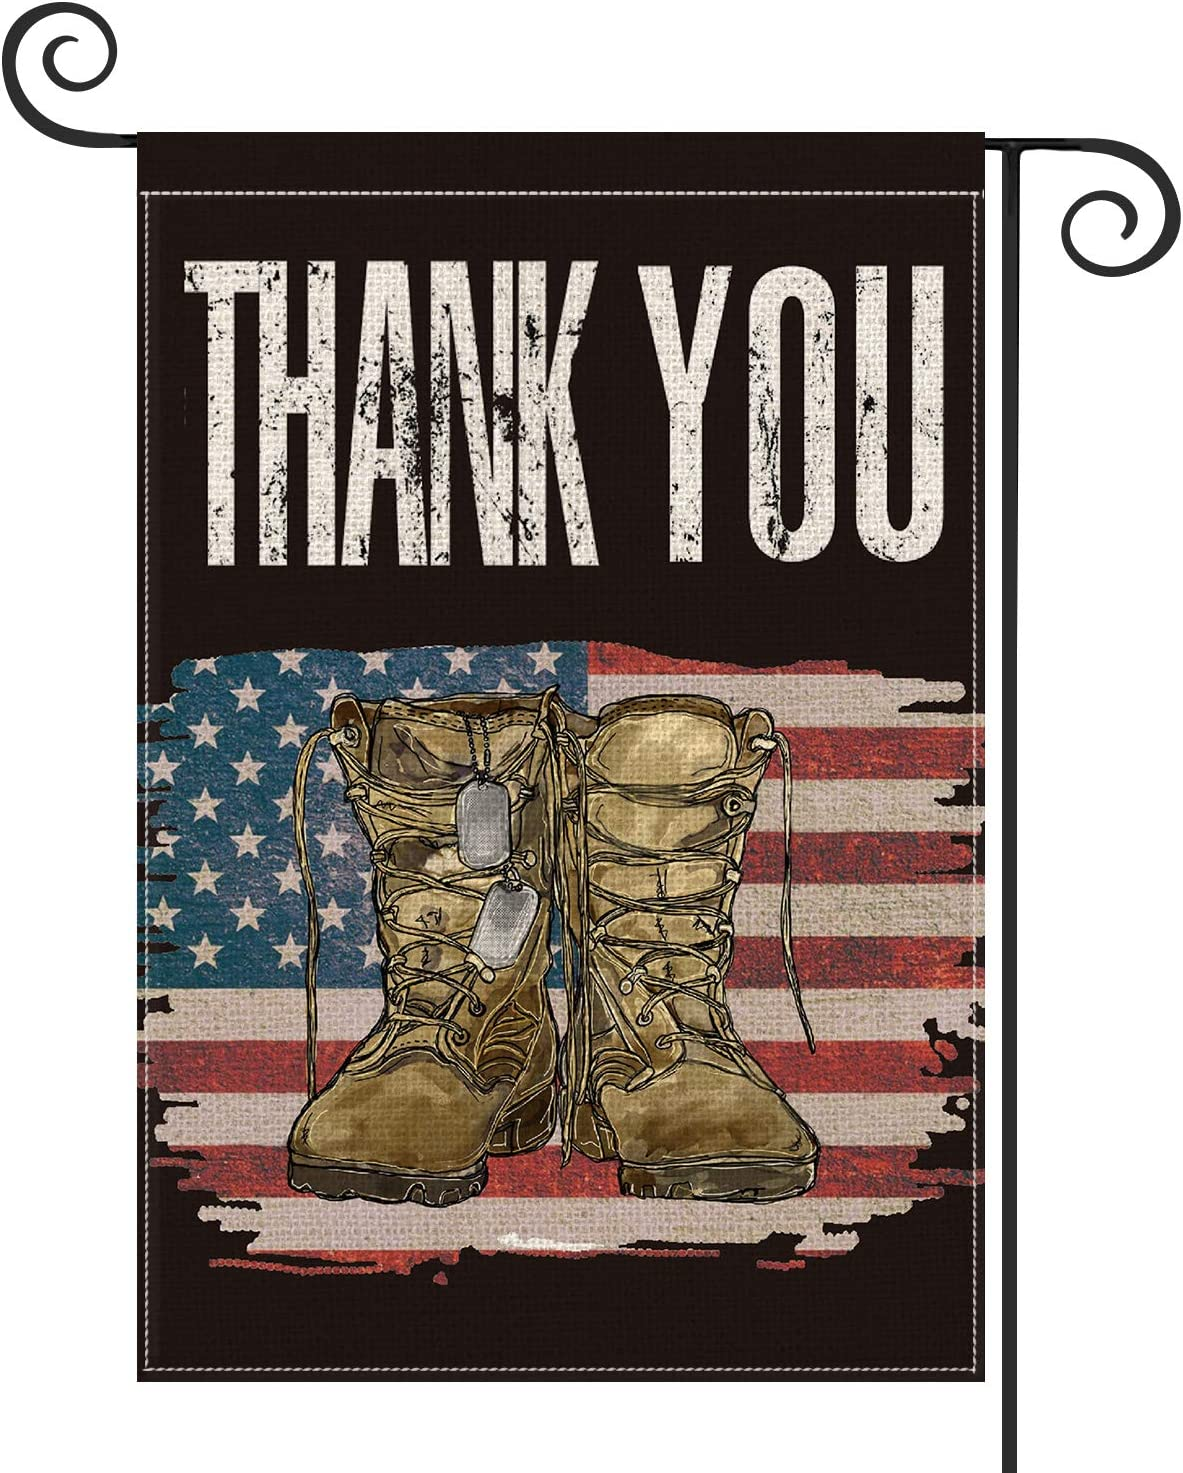 AVOIN Veteran's Day Watercolor American Flag Garden Flag Vertical Double Sided, Army Boots Thank You Yard Outdoor Decoration 12.5 x 18 Inch